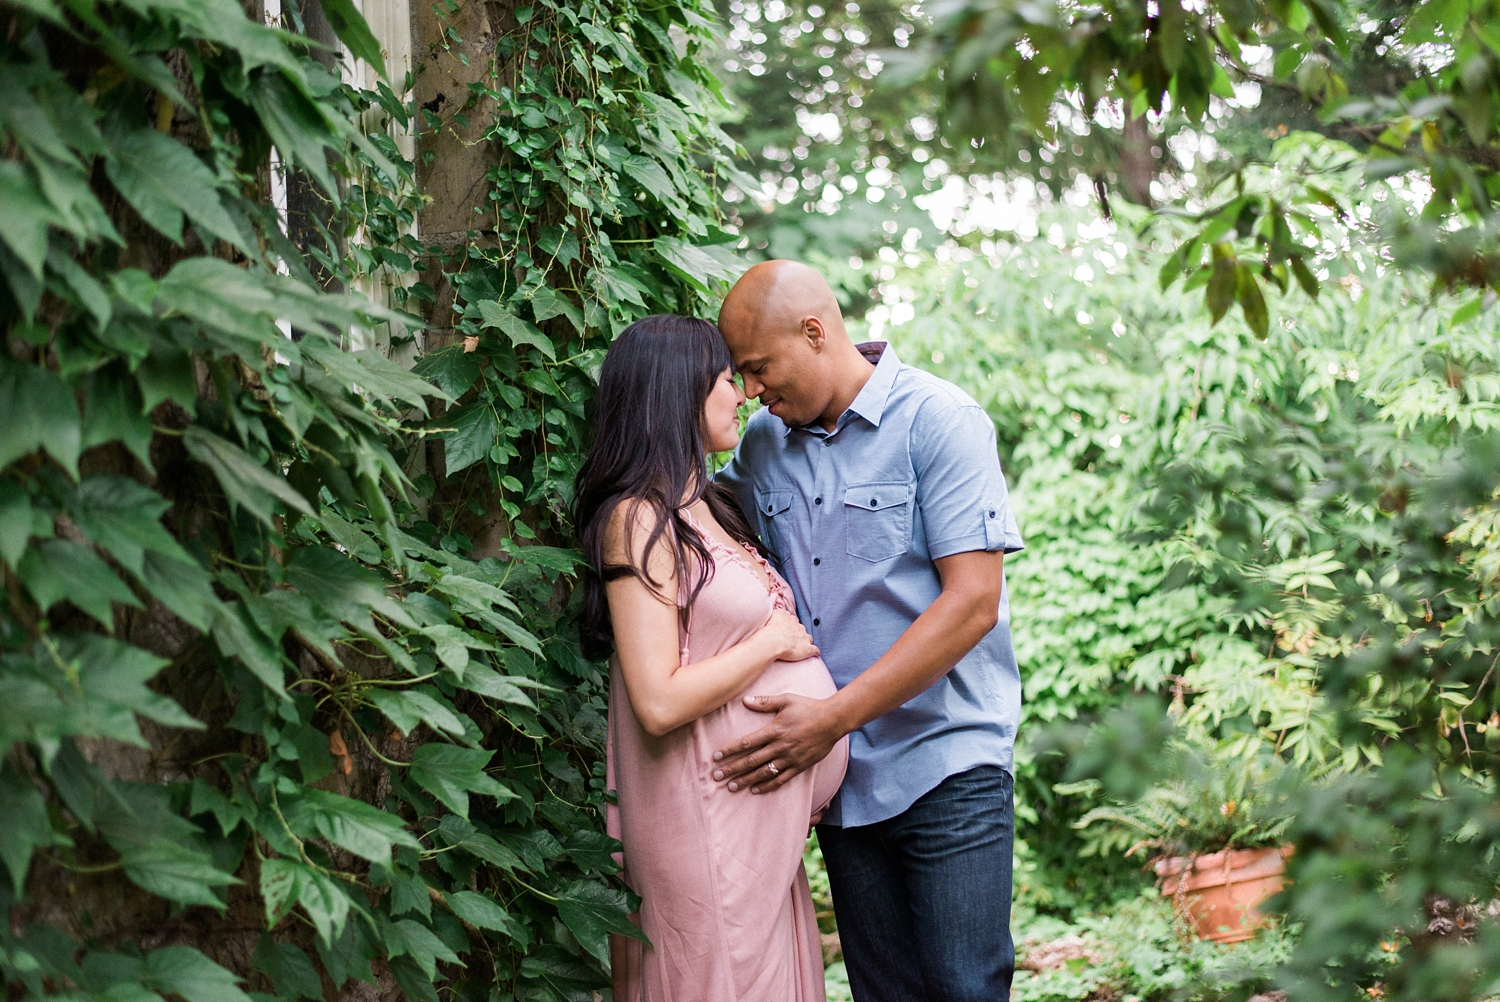 portland-maternity-photography-pittock-mansion-shelley-marie-photo-063_cr.jpg